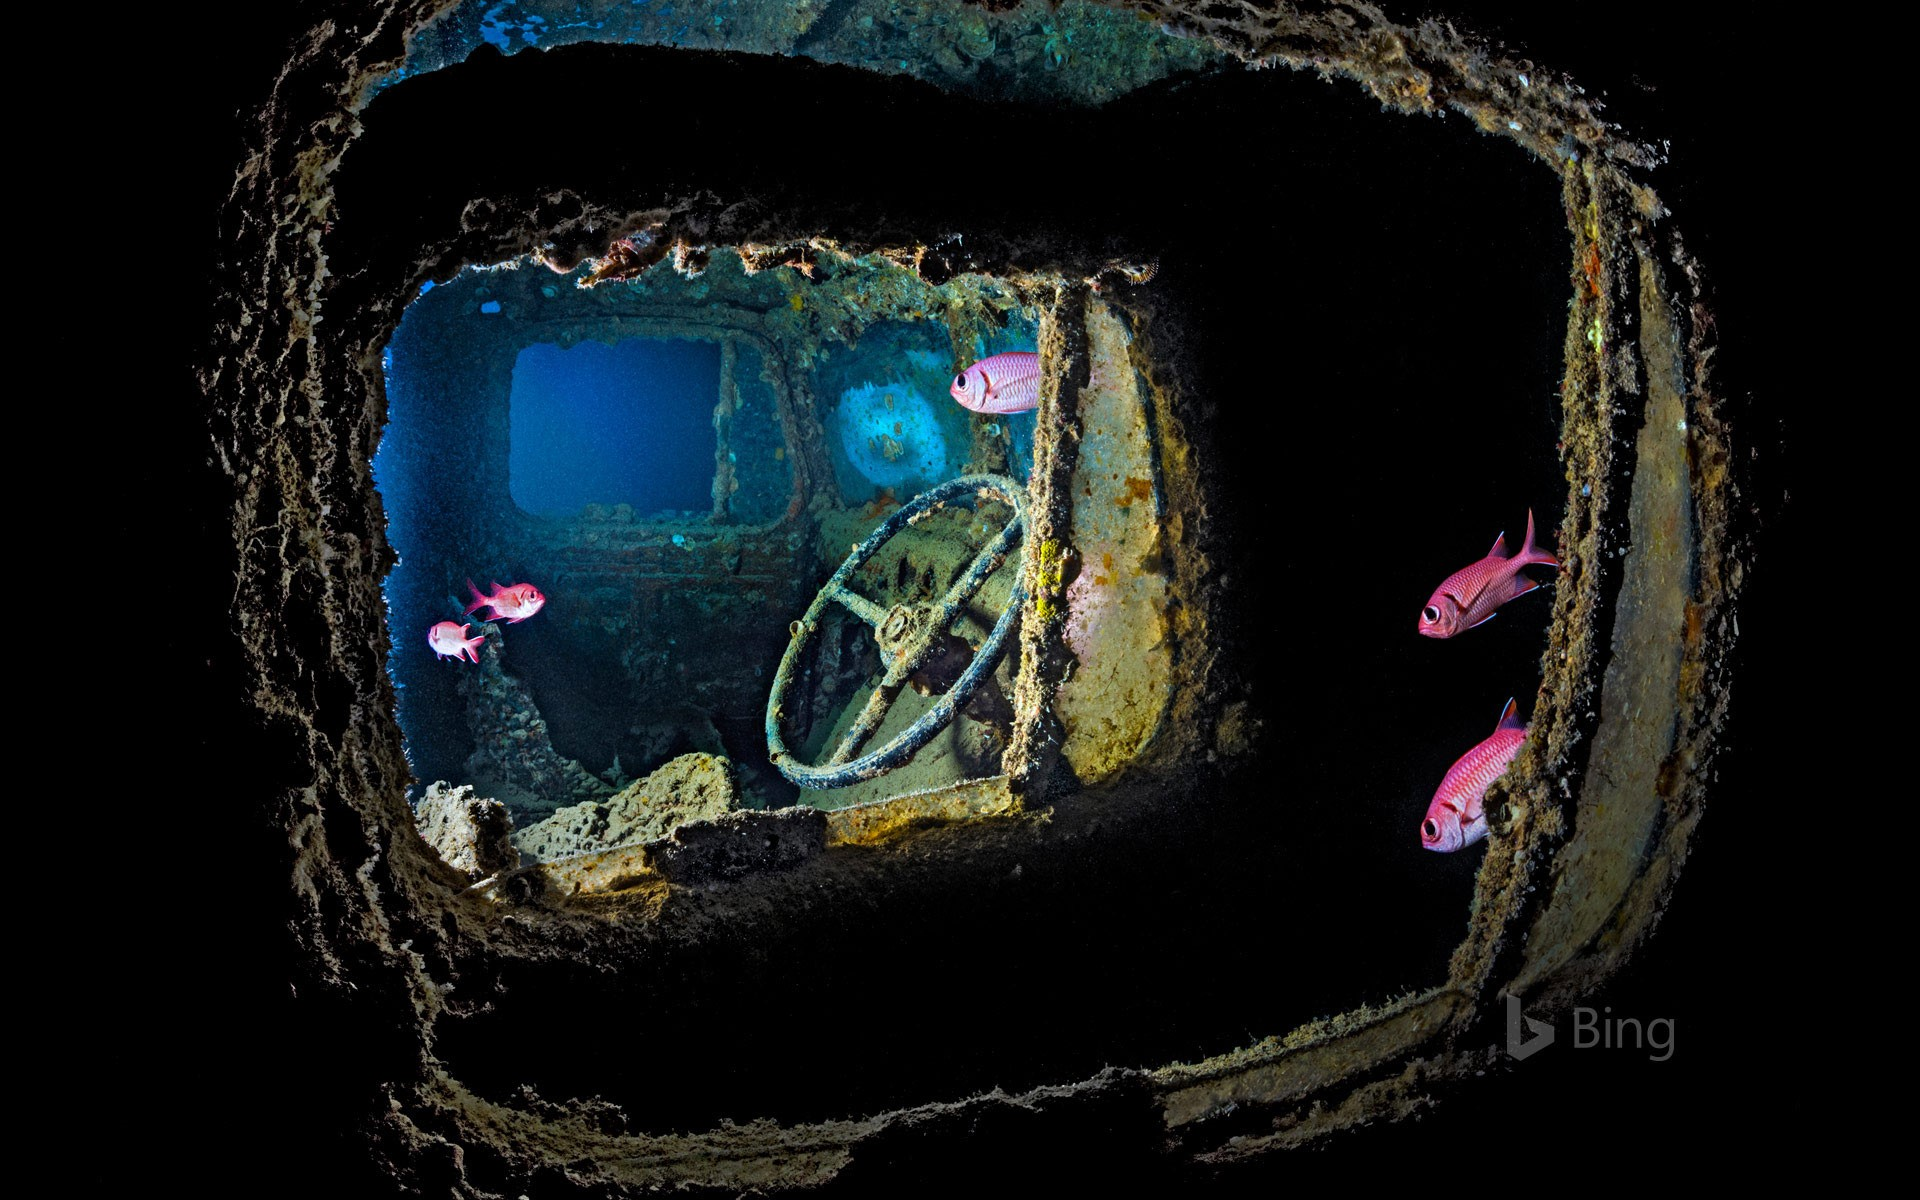 Wreckage of the SS Thistlegorm in the Red Sea